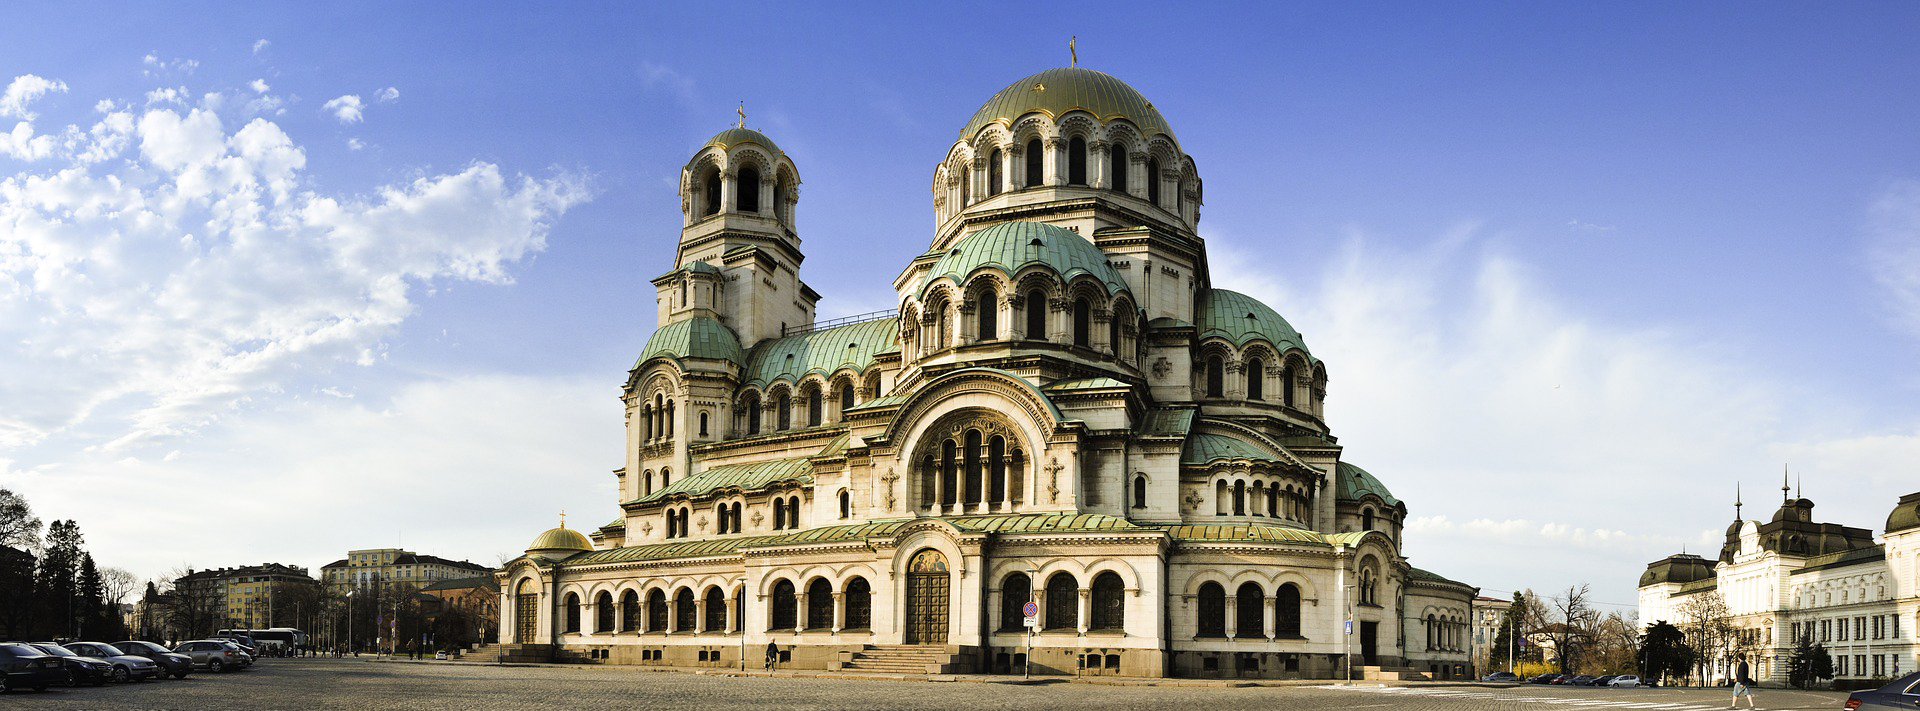 Kathedrale in Sofia